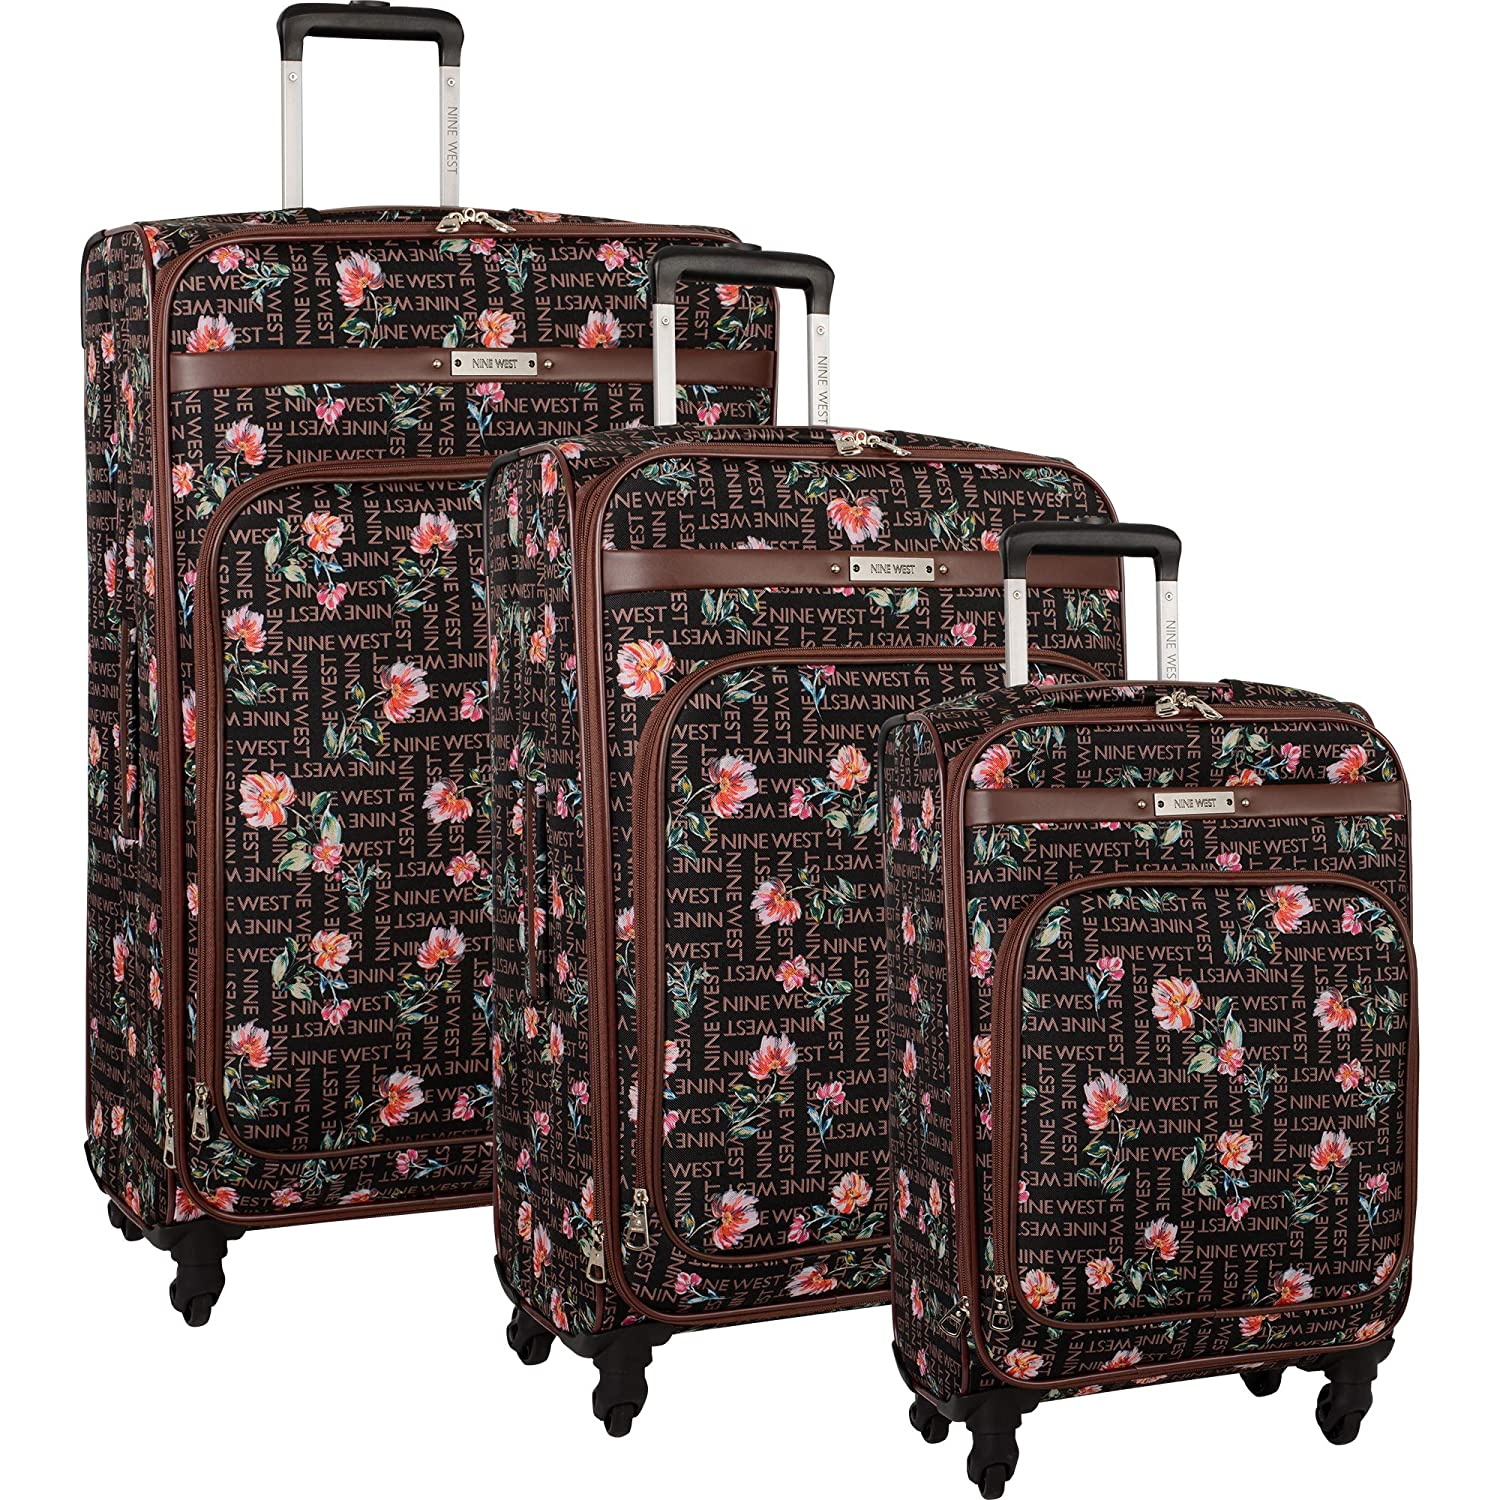 Image of Nine West 3 Piece Lightweight Spinner Luggage Suitcase Set, Brushstroke Bloom Luggage